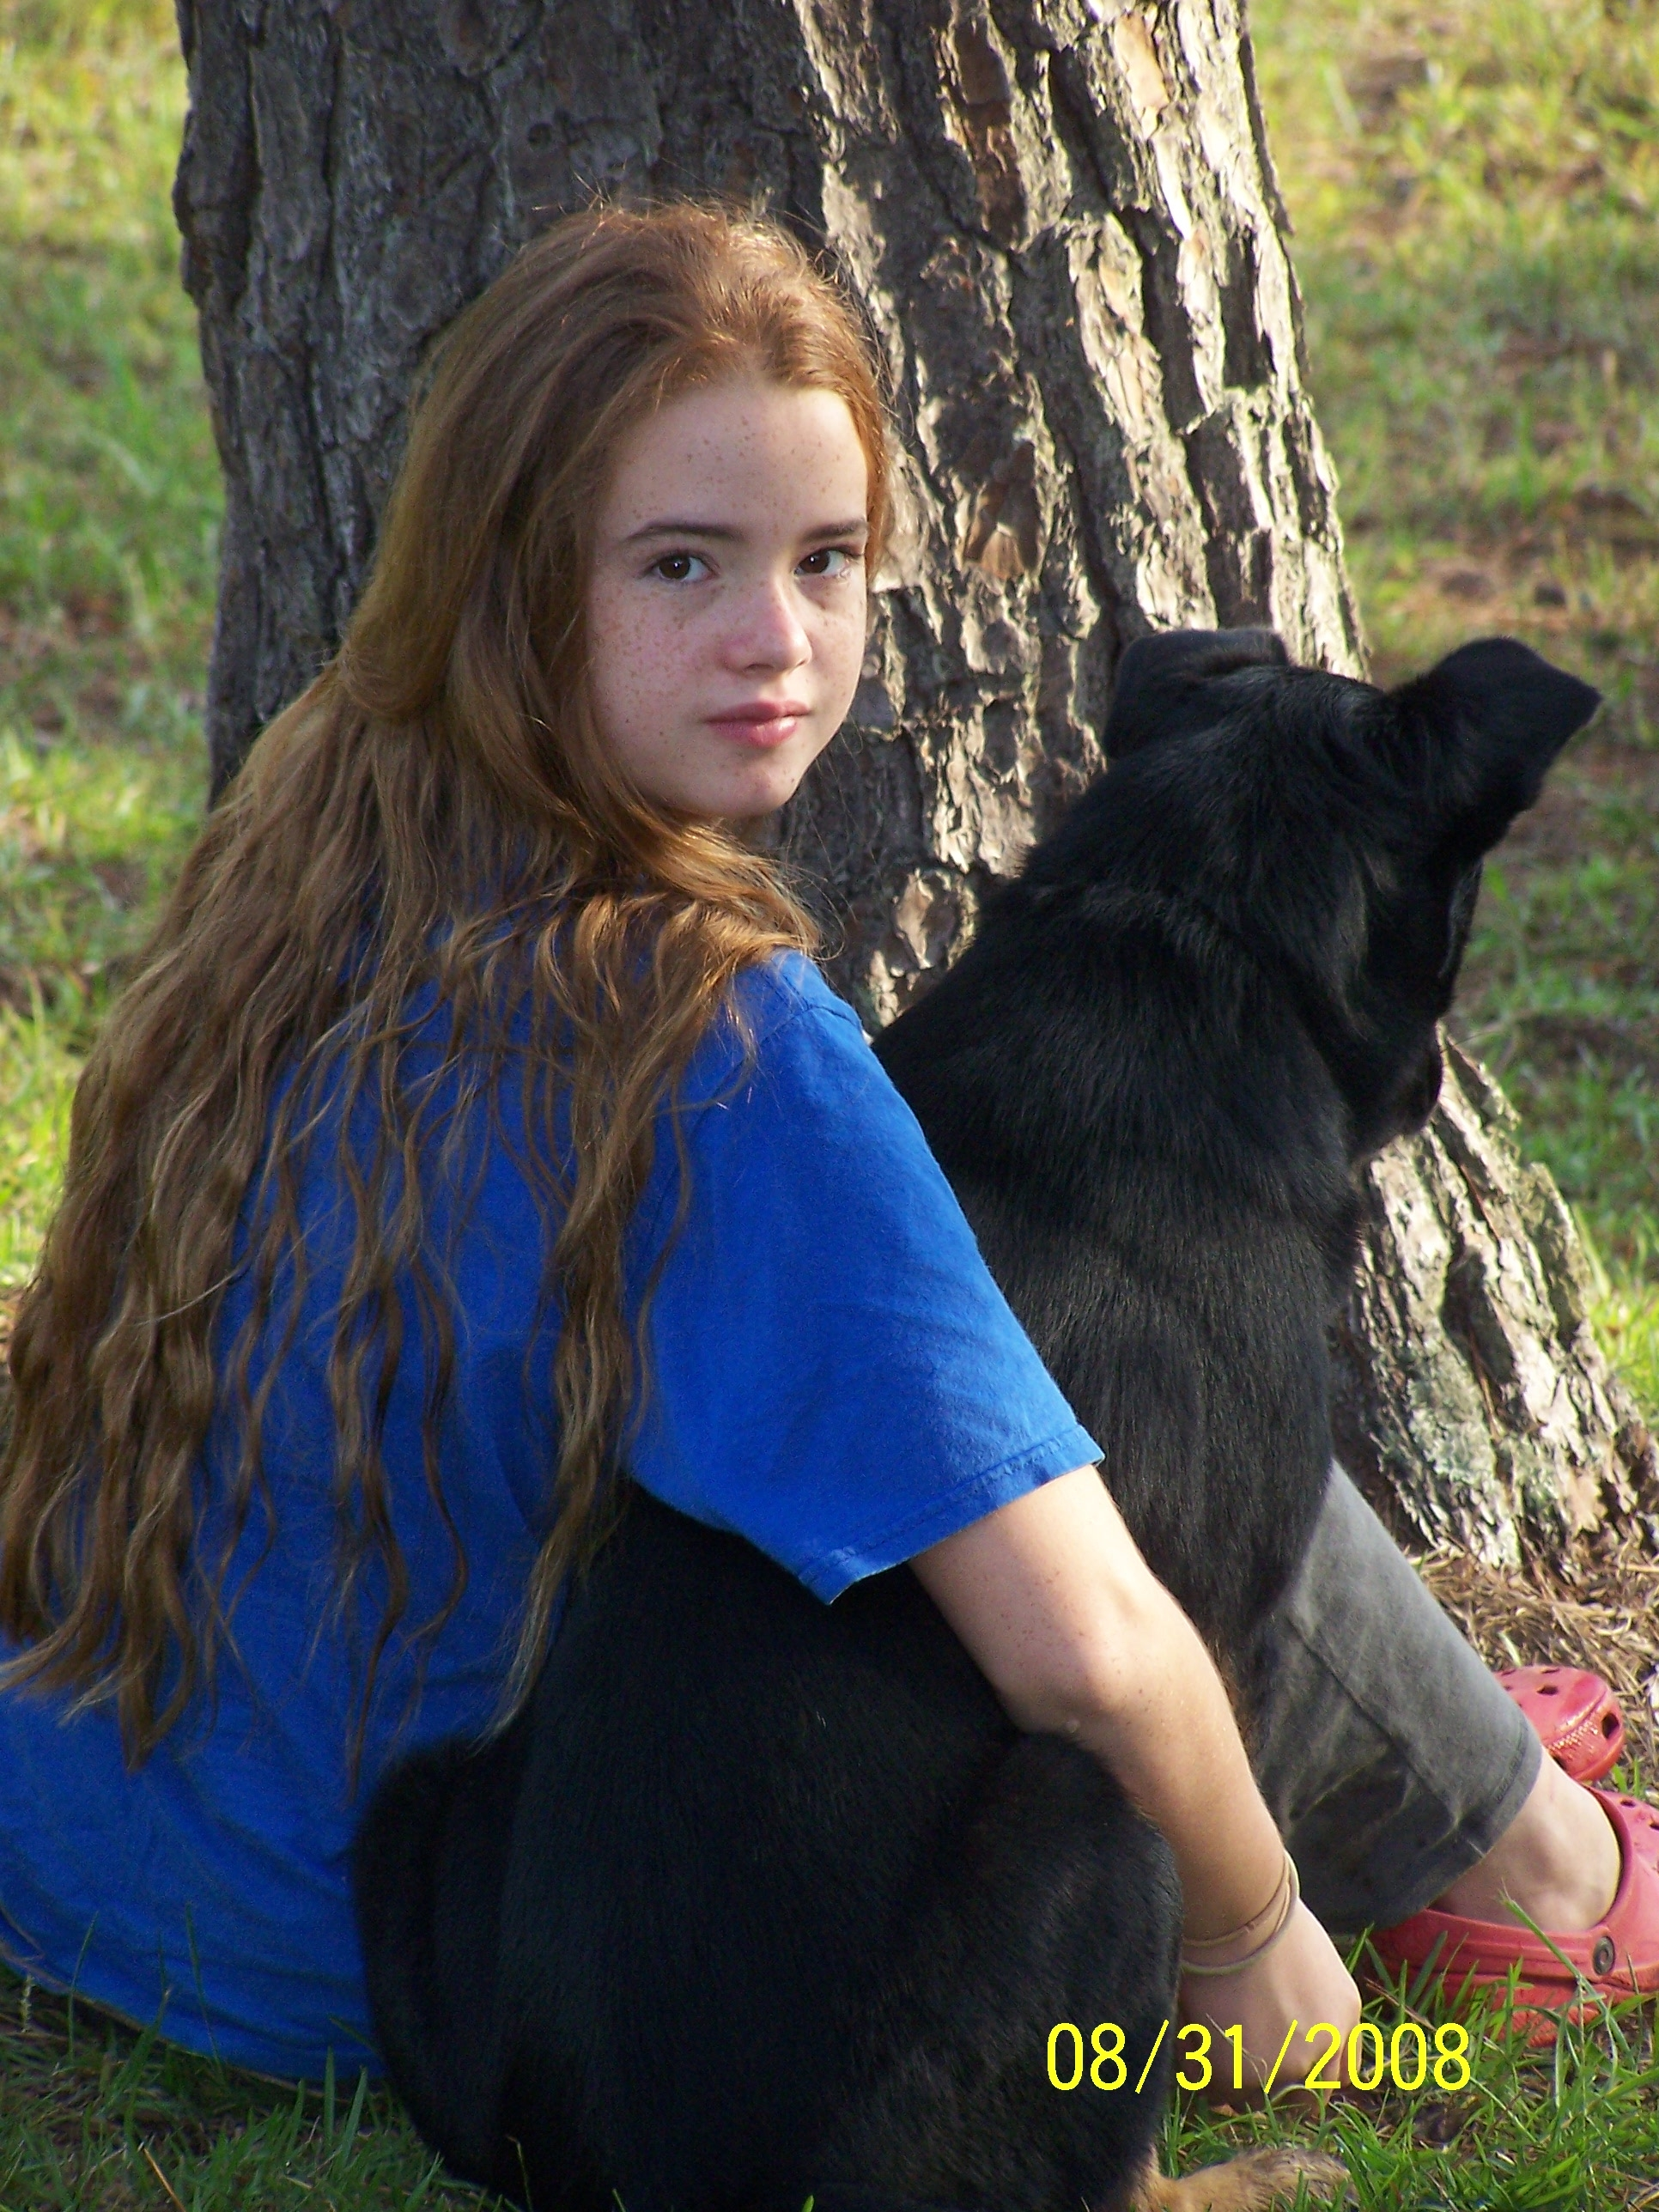 maddie with dog